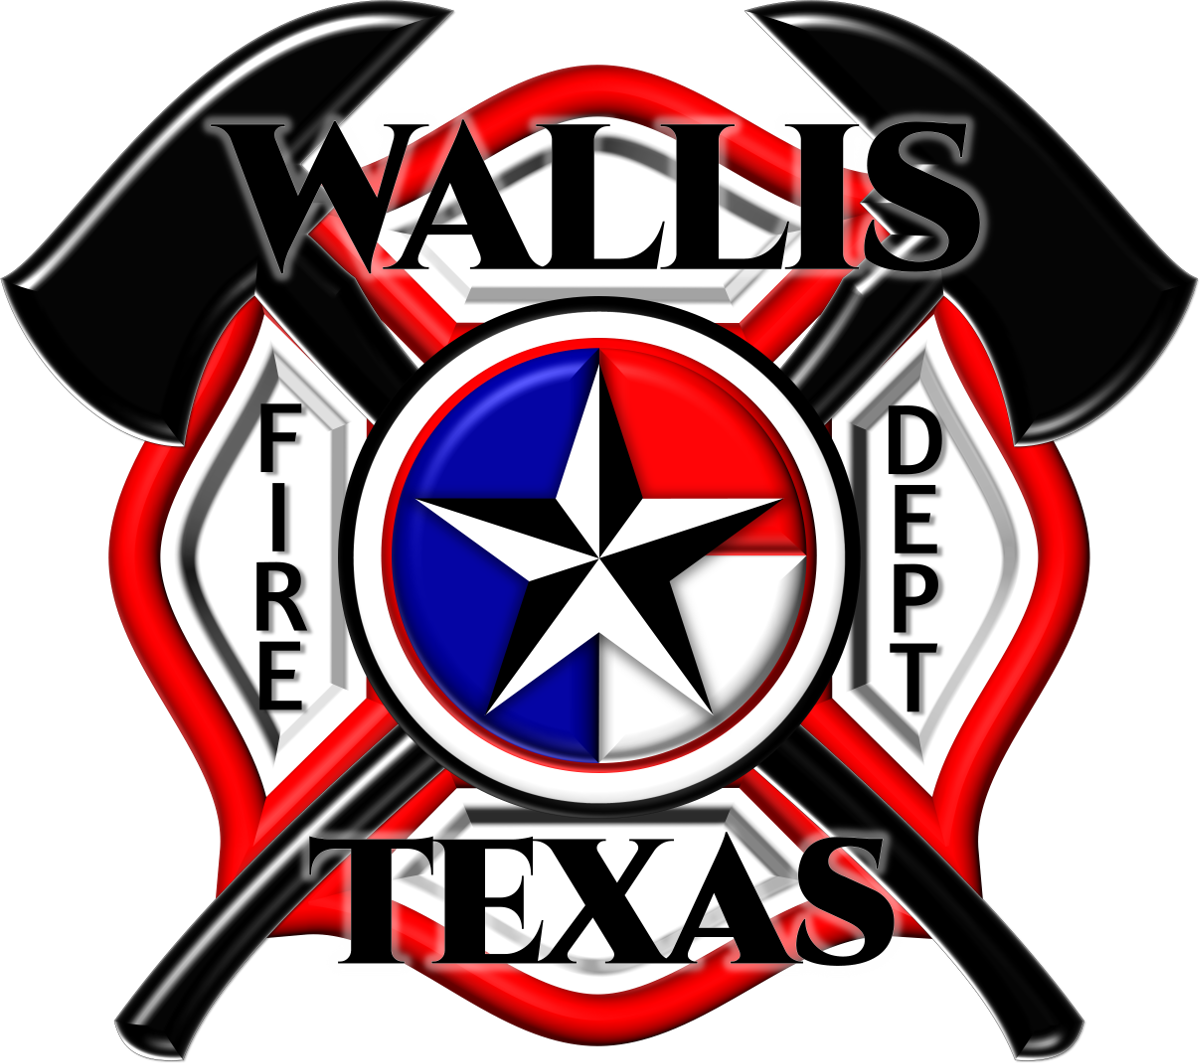 serious masculine fire department logo design for wallis fire rh designcrowd com fire department graphic design fire department logo design software